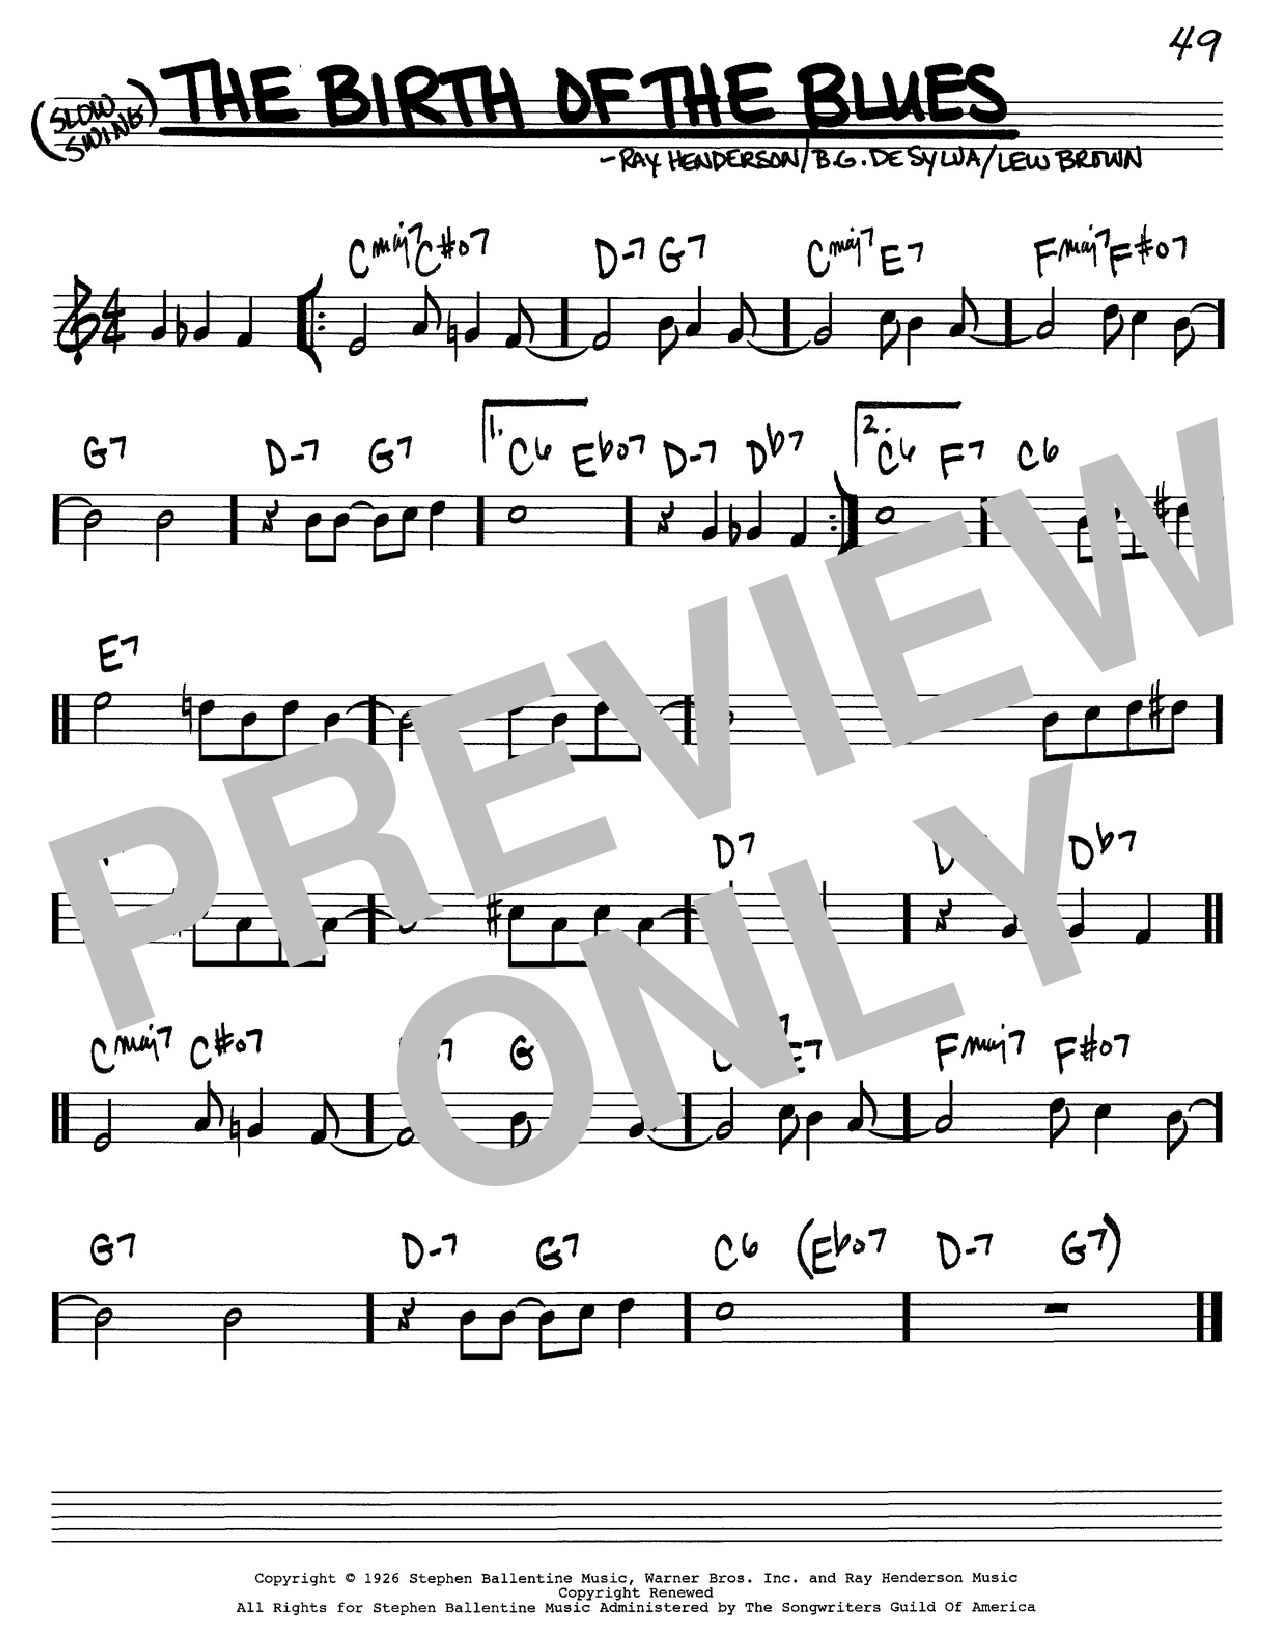 Lew Brown The Birth Of The Blues sheet music notes and chords. Download Printable PDF.